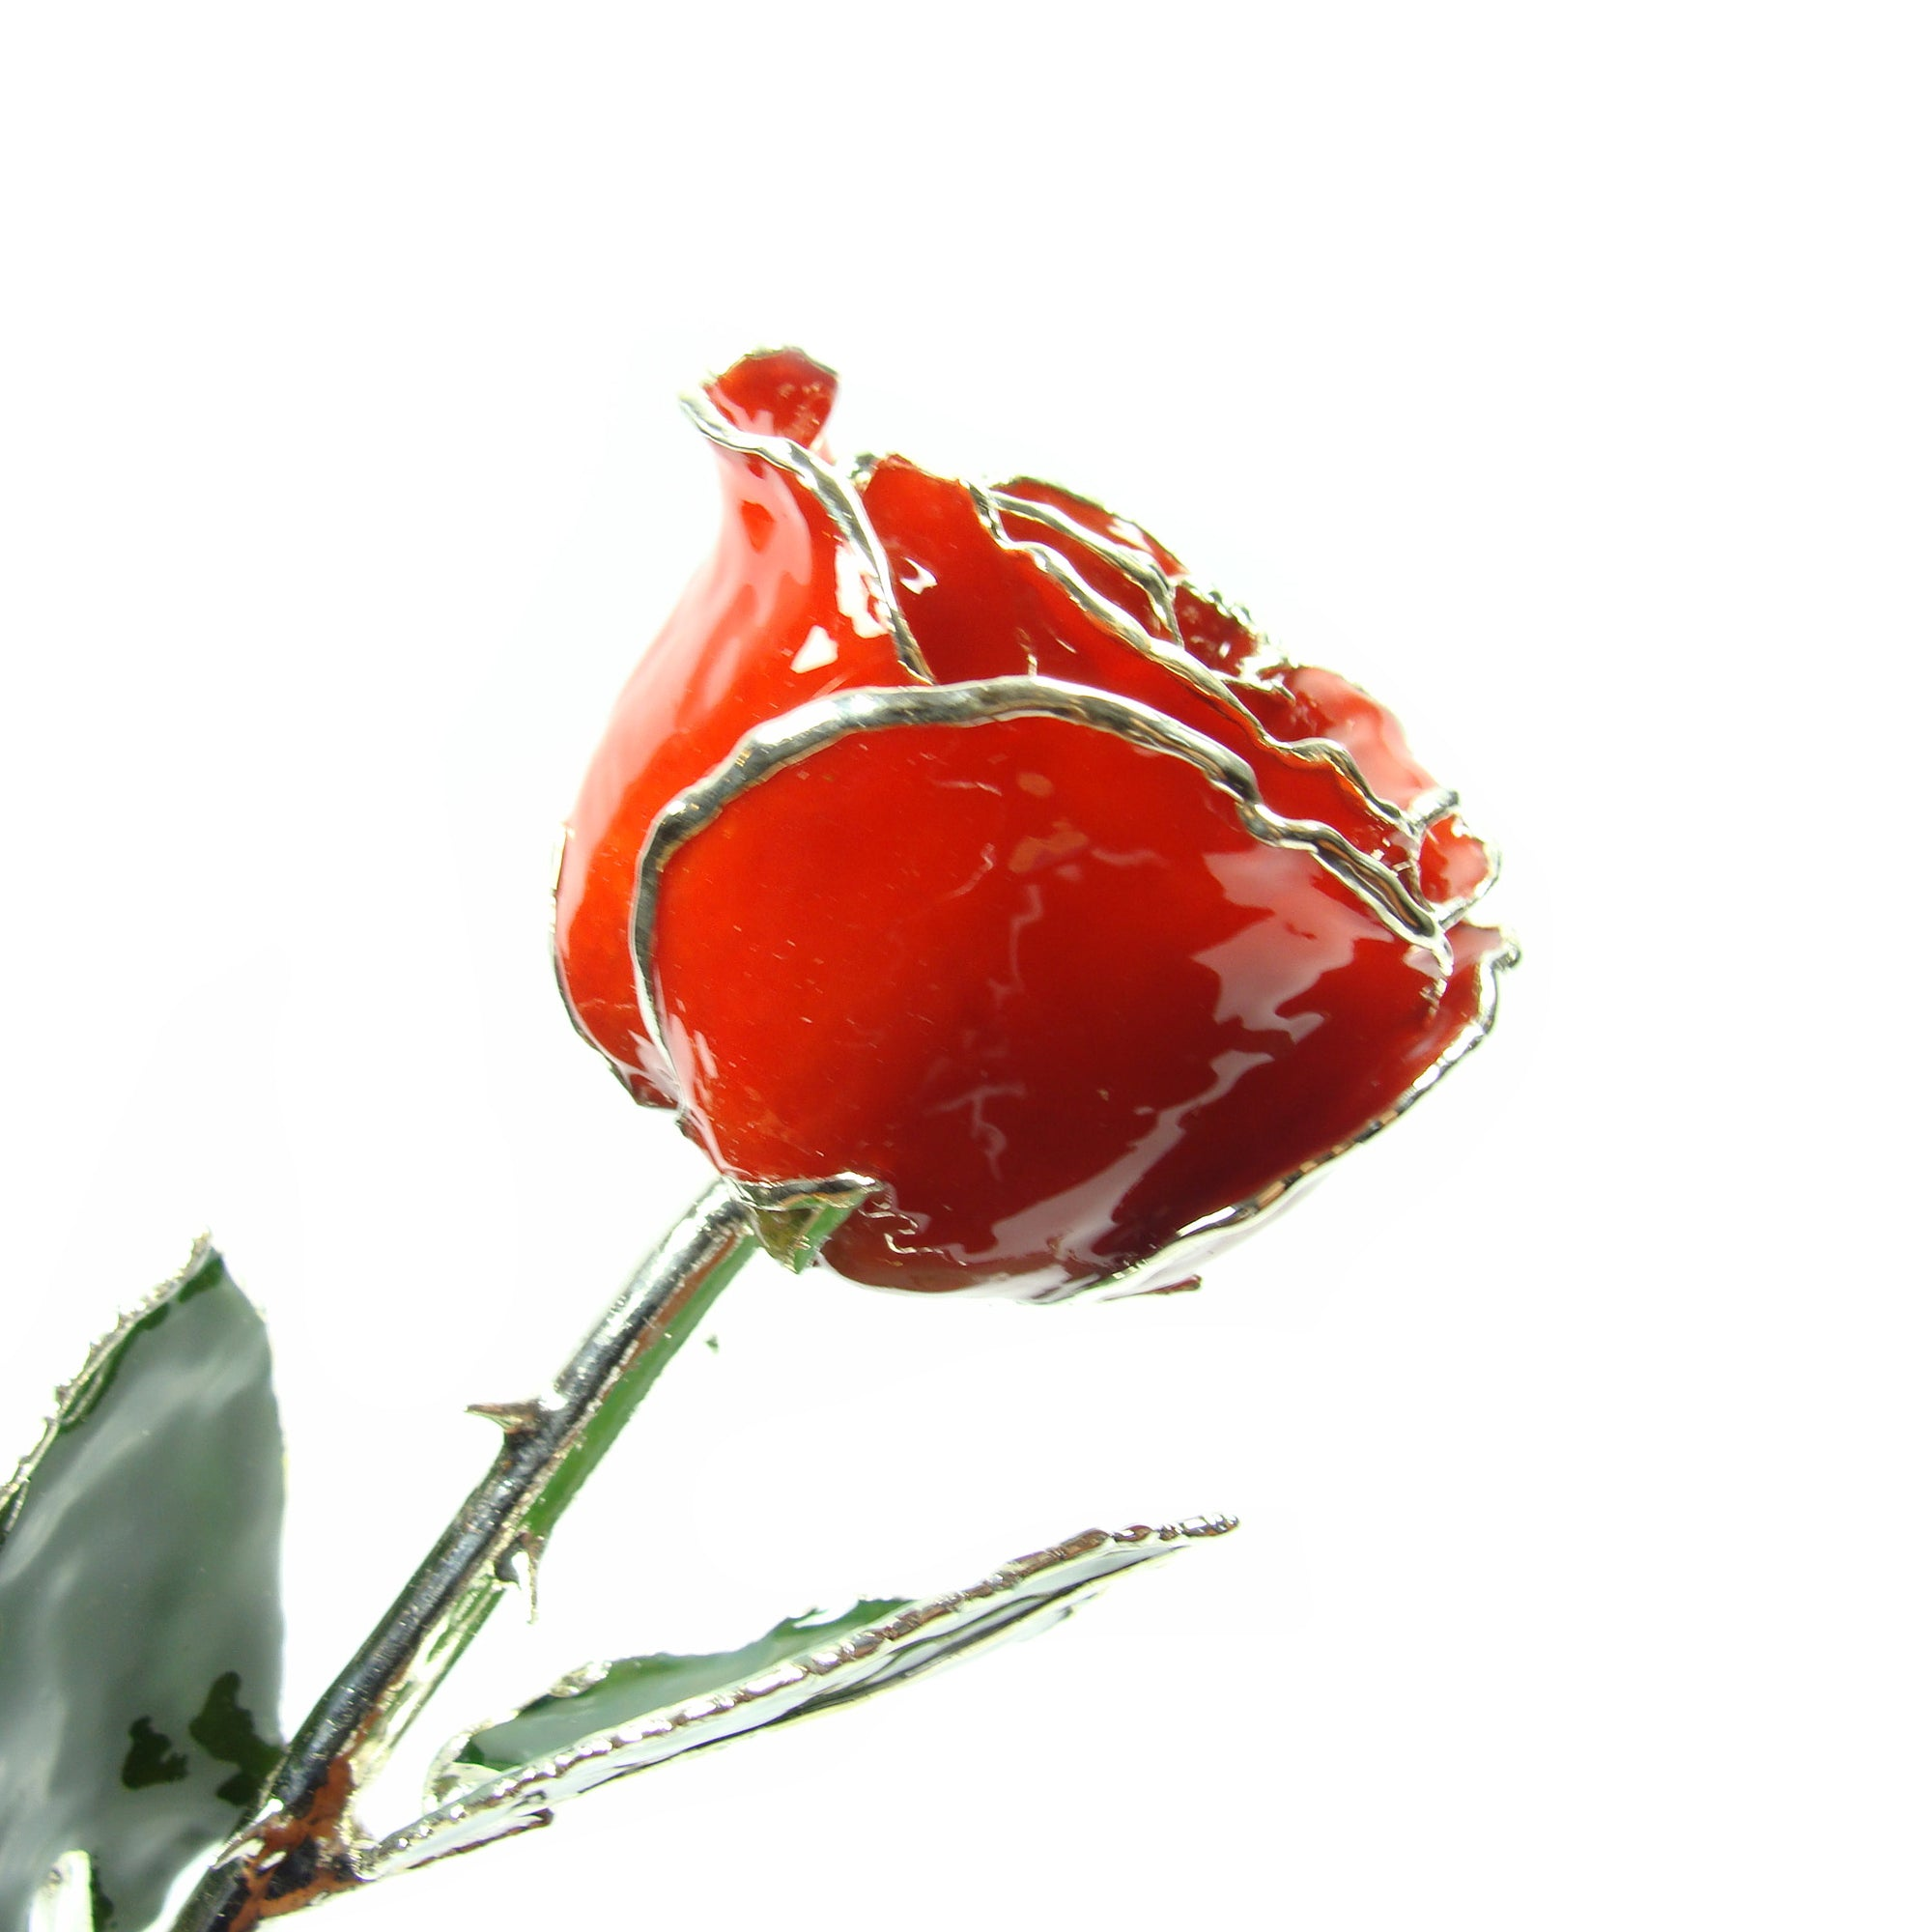 Silver Trimmed Forever Rose with Red Petals. View of Stem, Leaves, and Rose Petals and Showing Detail of Silver Trim